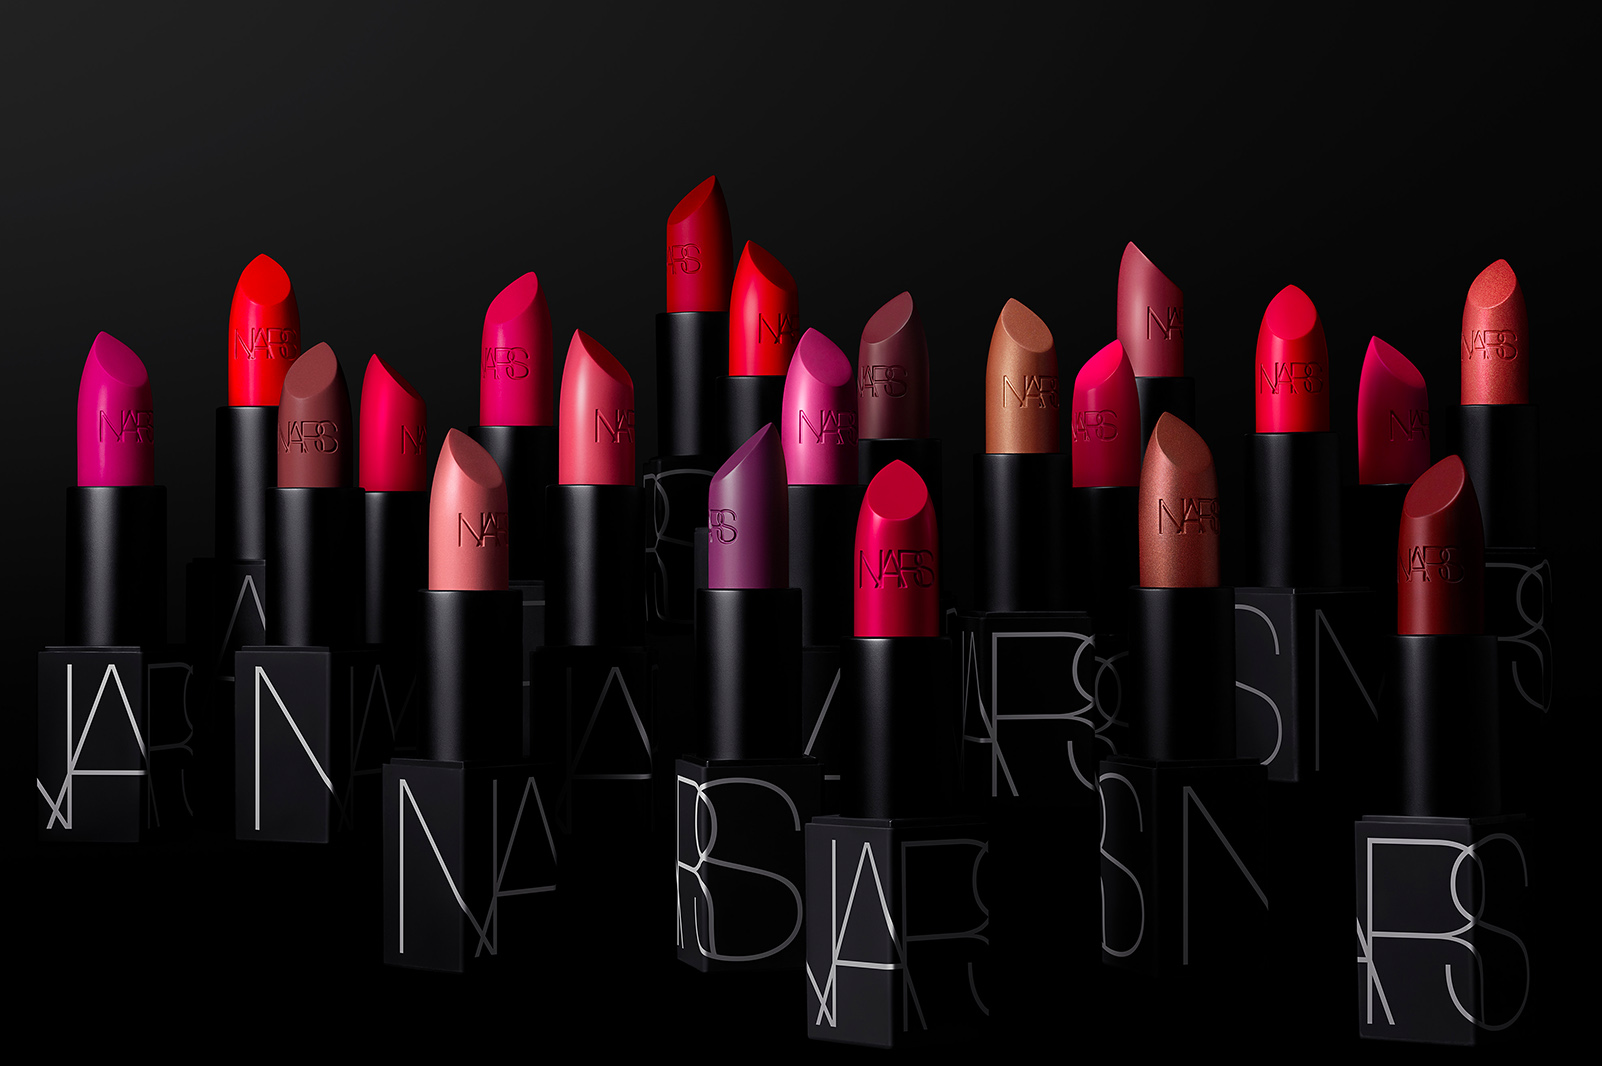 No Rules, Just Lips: The NARS Iconic Lipstick Collection is on our list this year